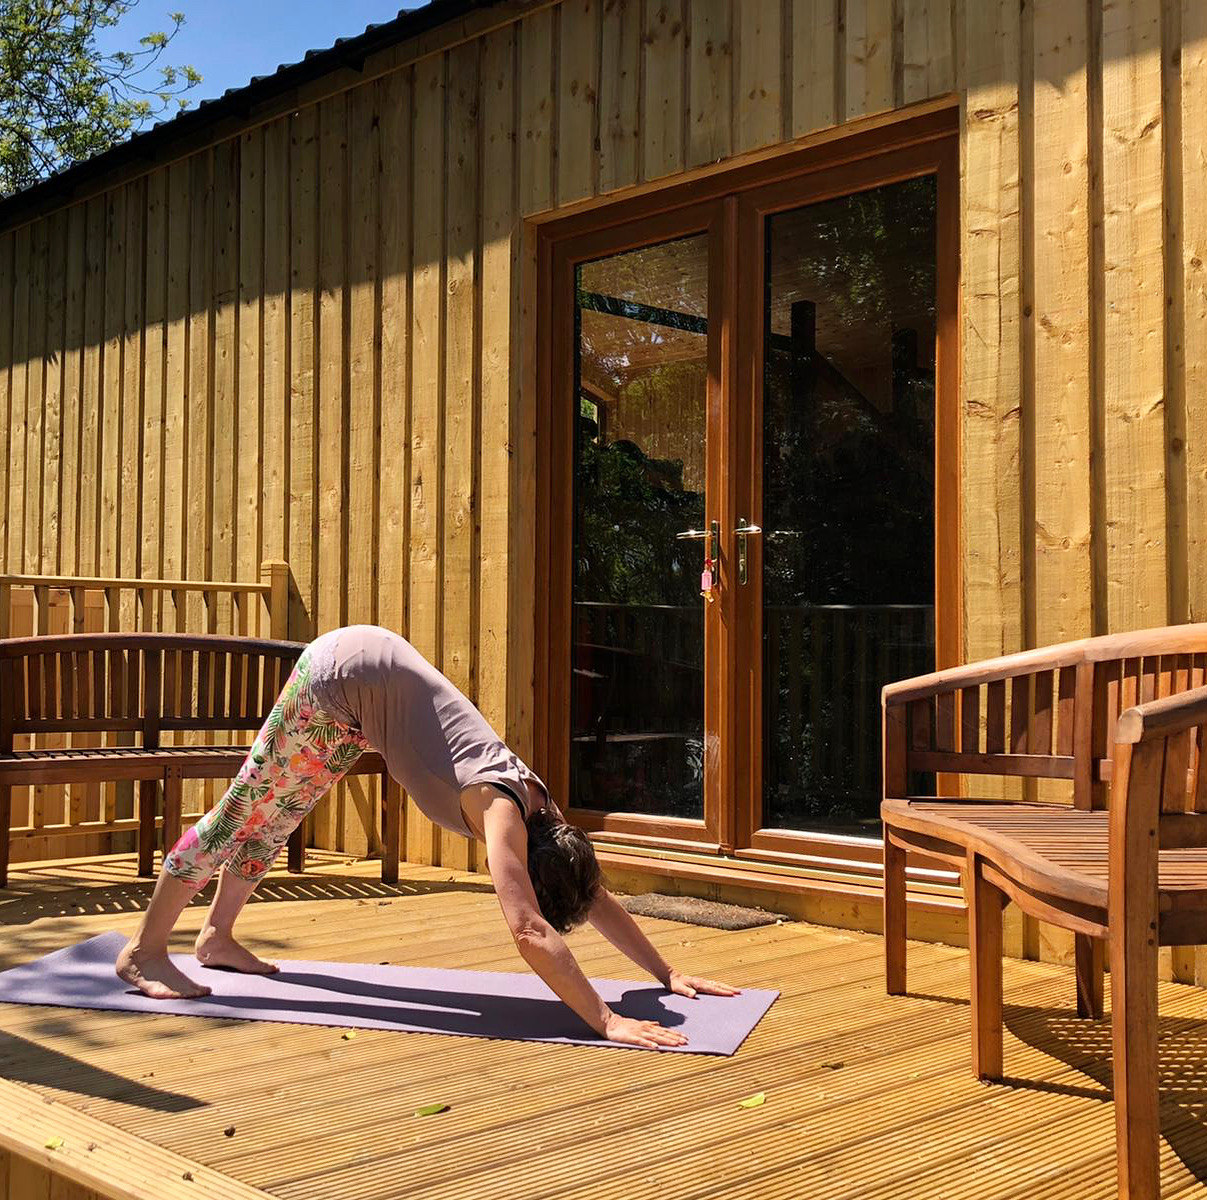 Lorraine doing yoga in the sun on the deck of the Yogandspice Studio.